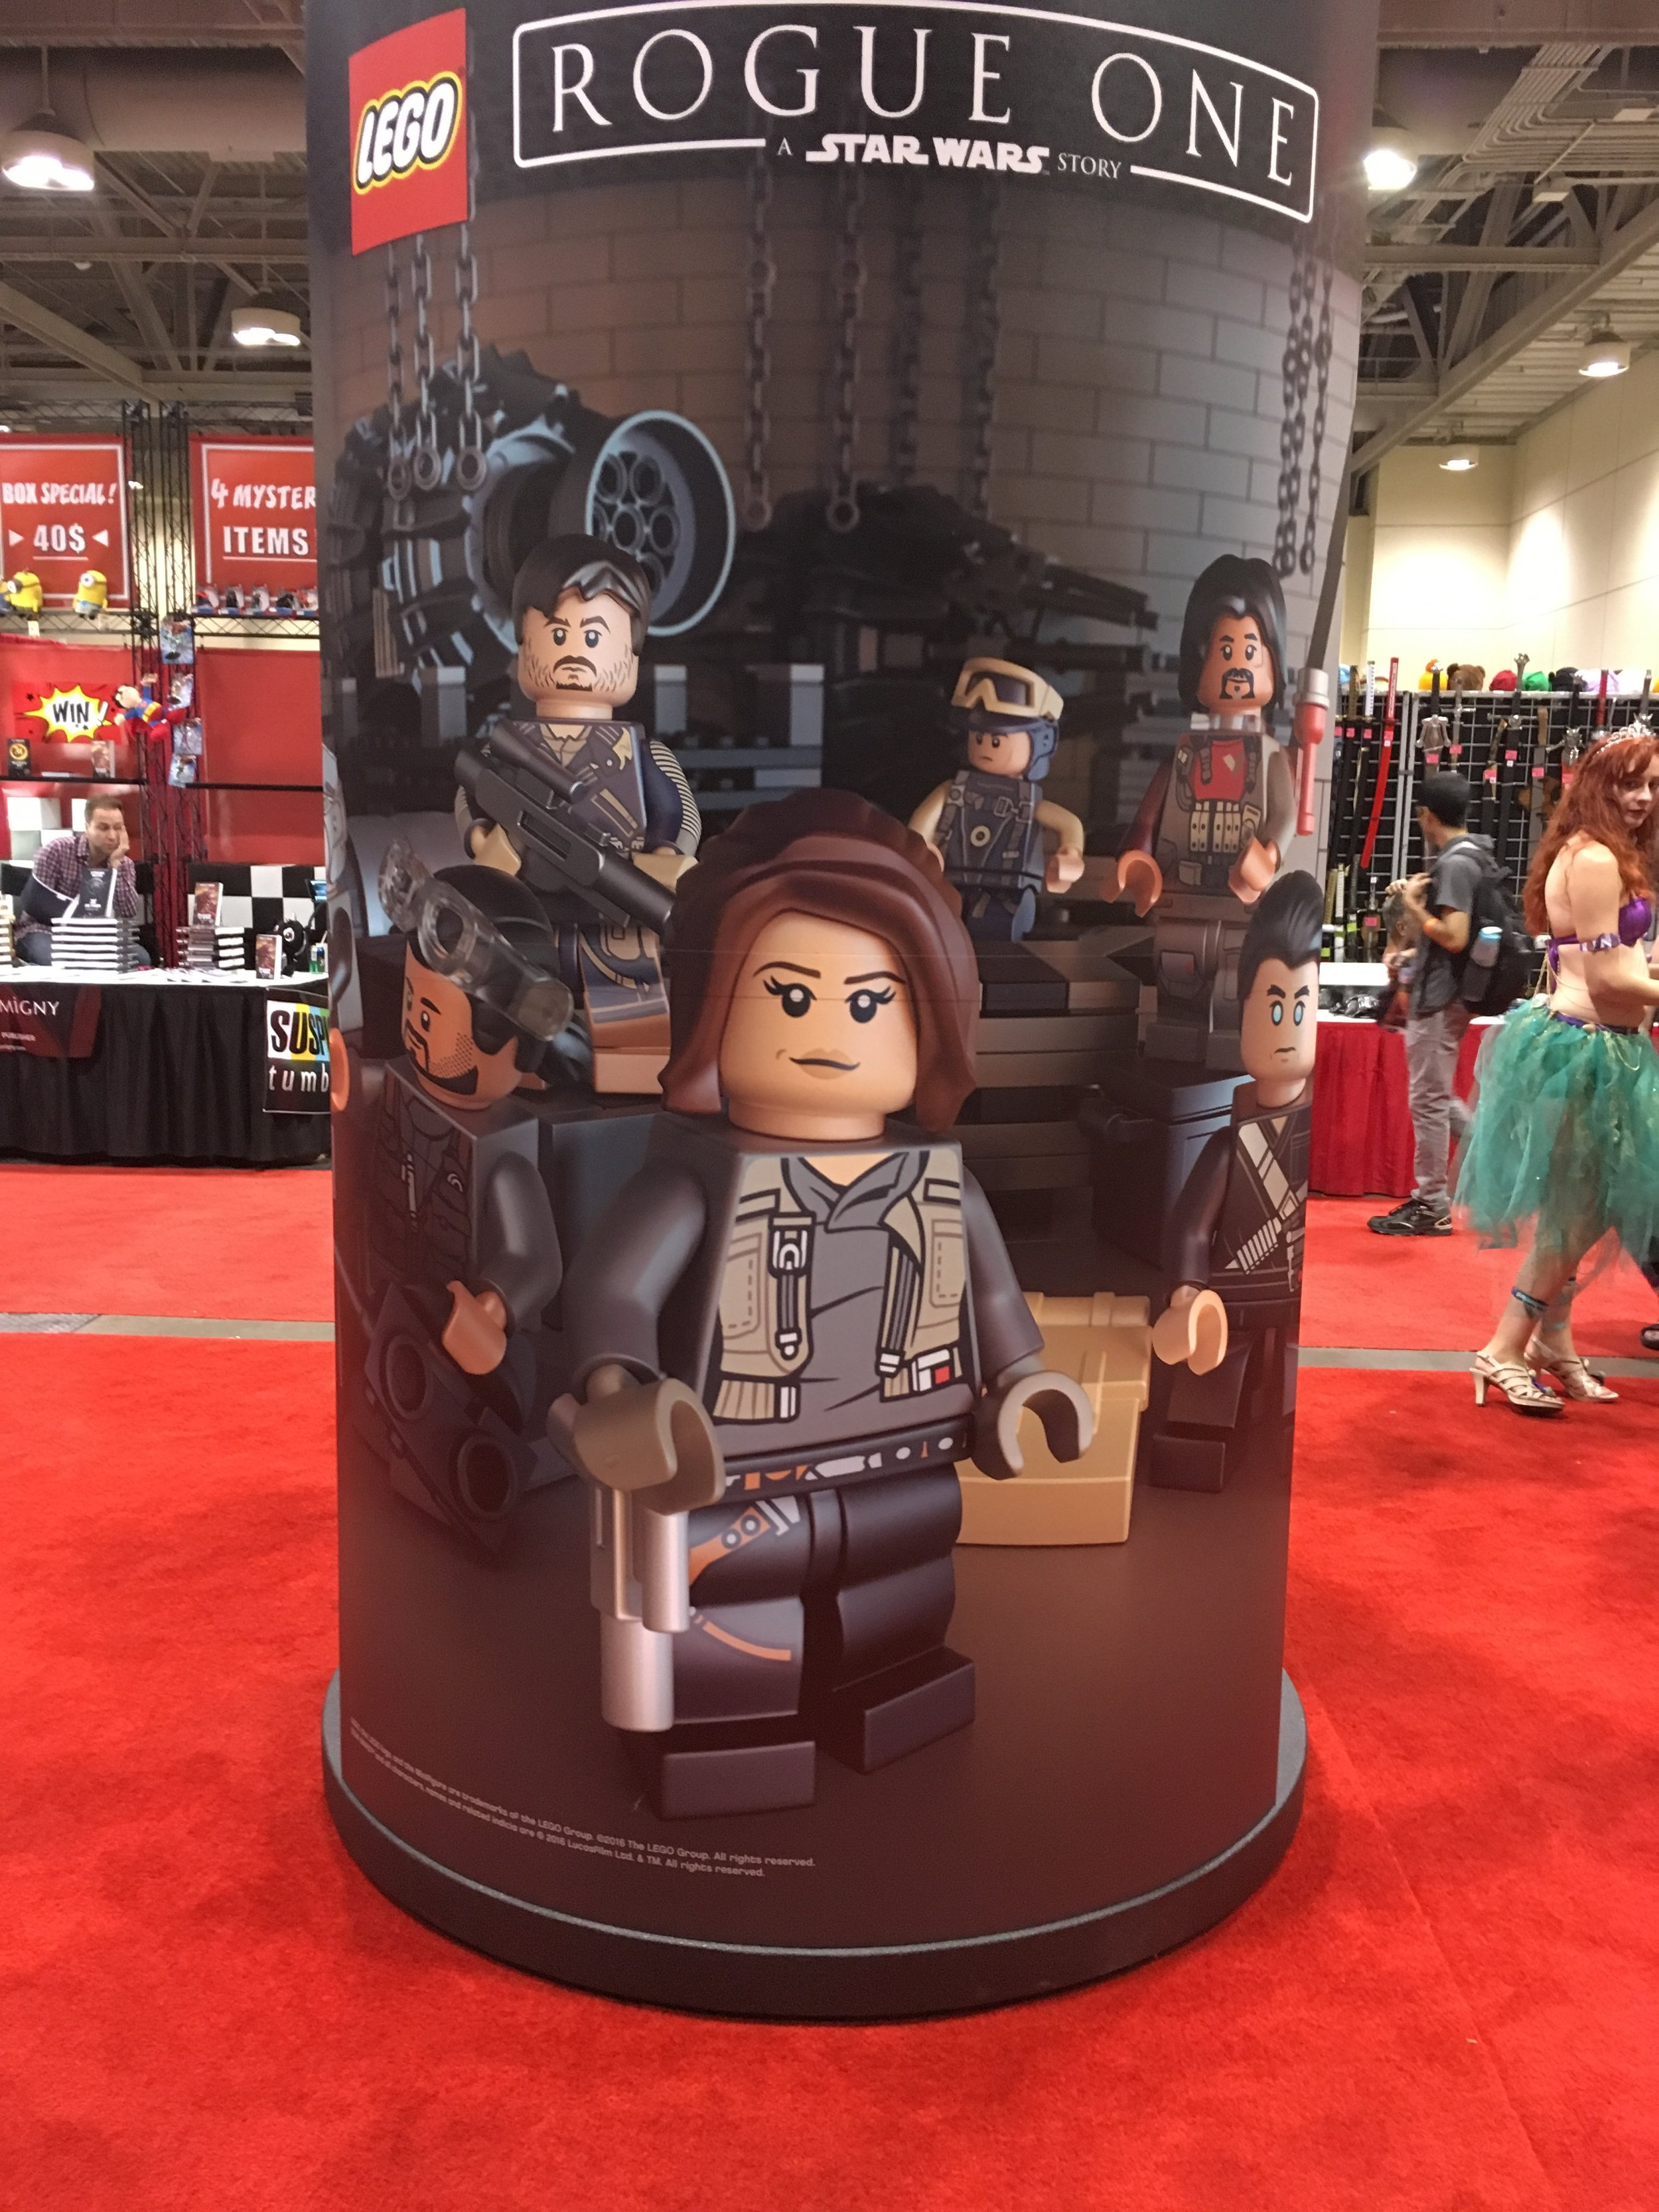 LEGO Rogue One confirmed?